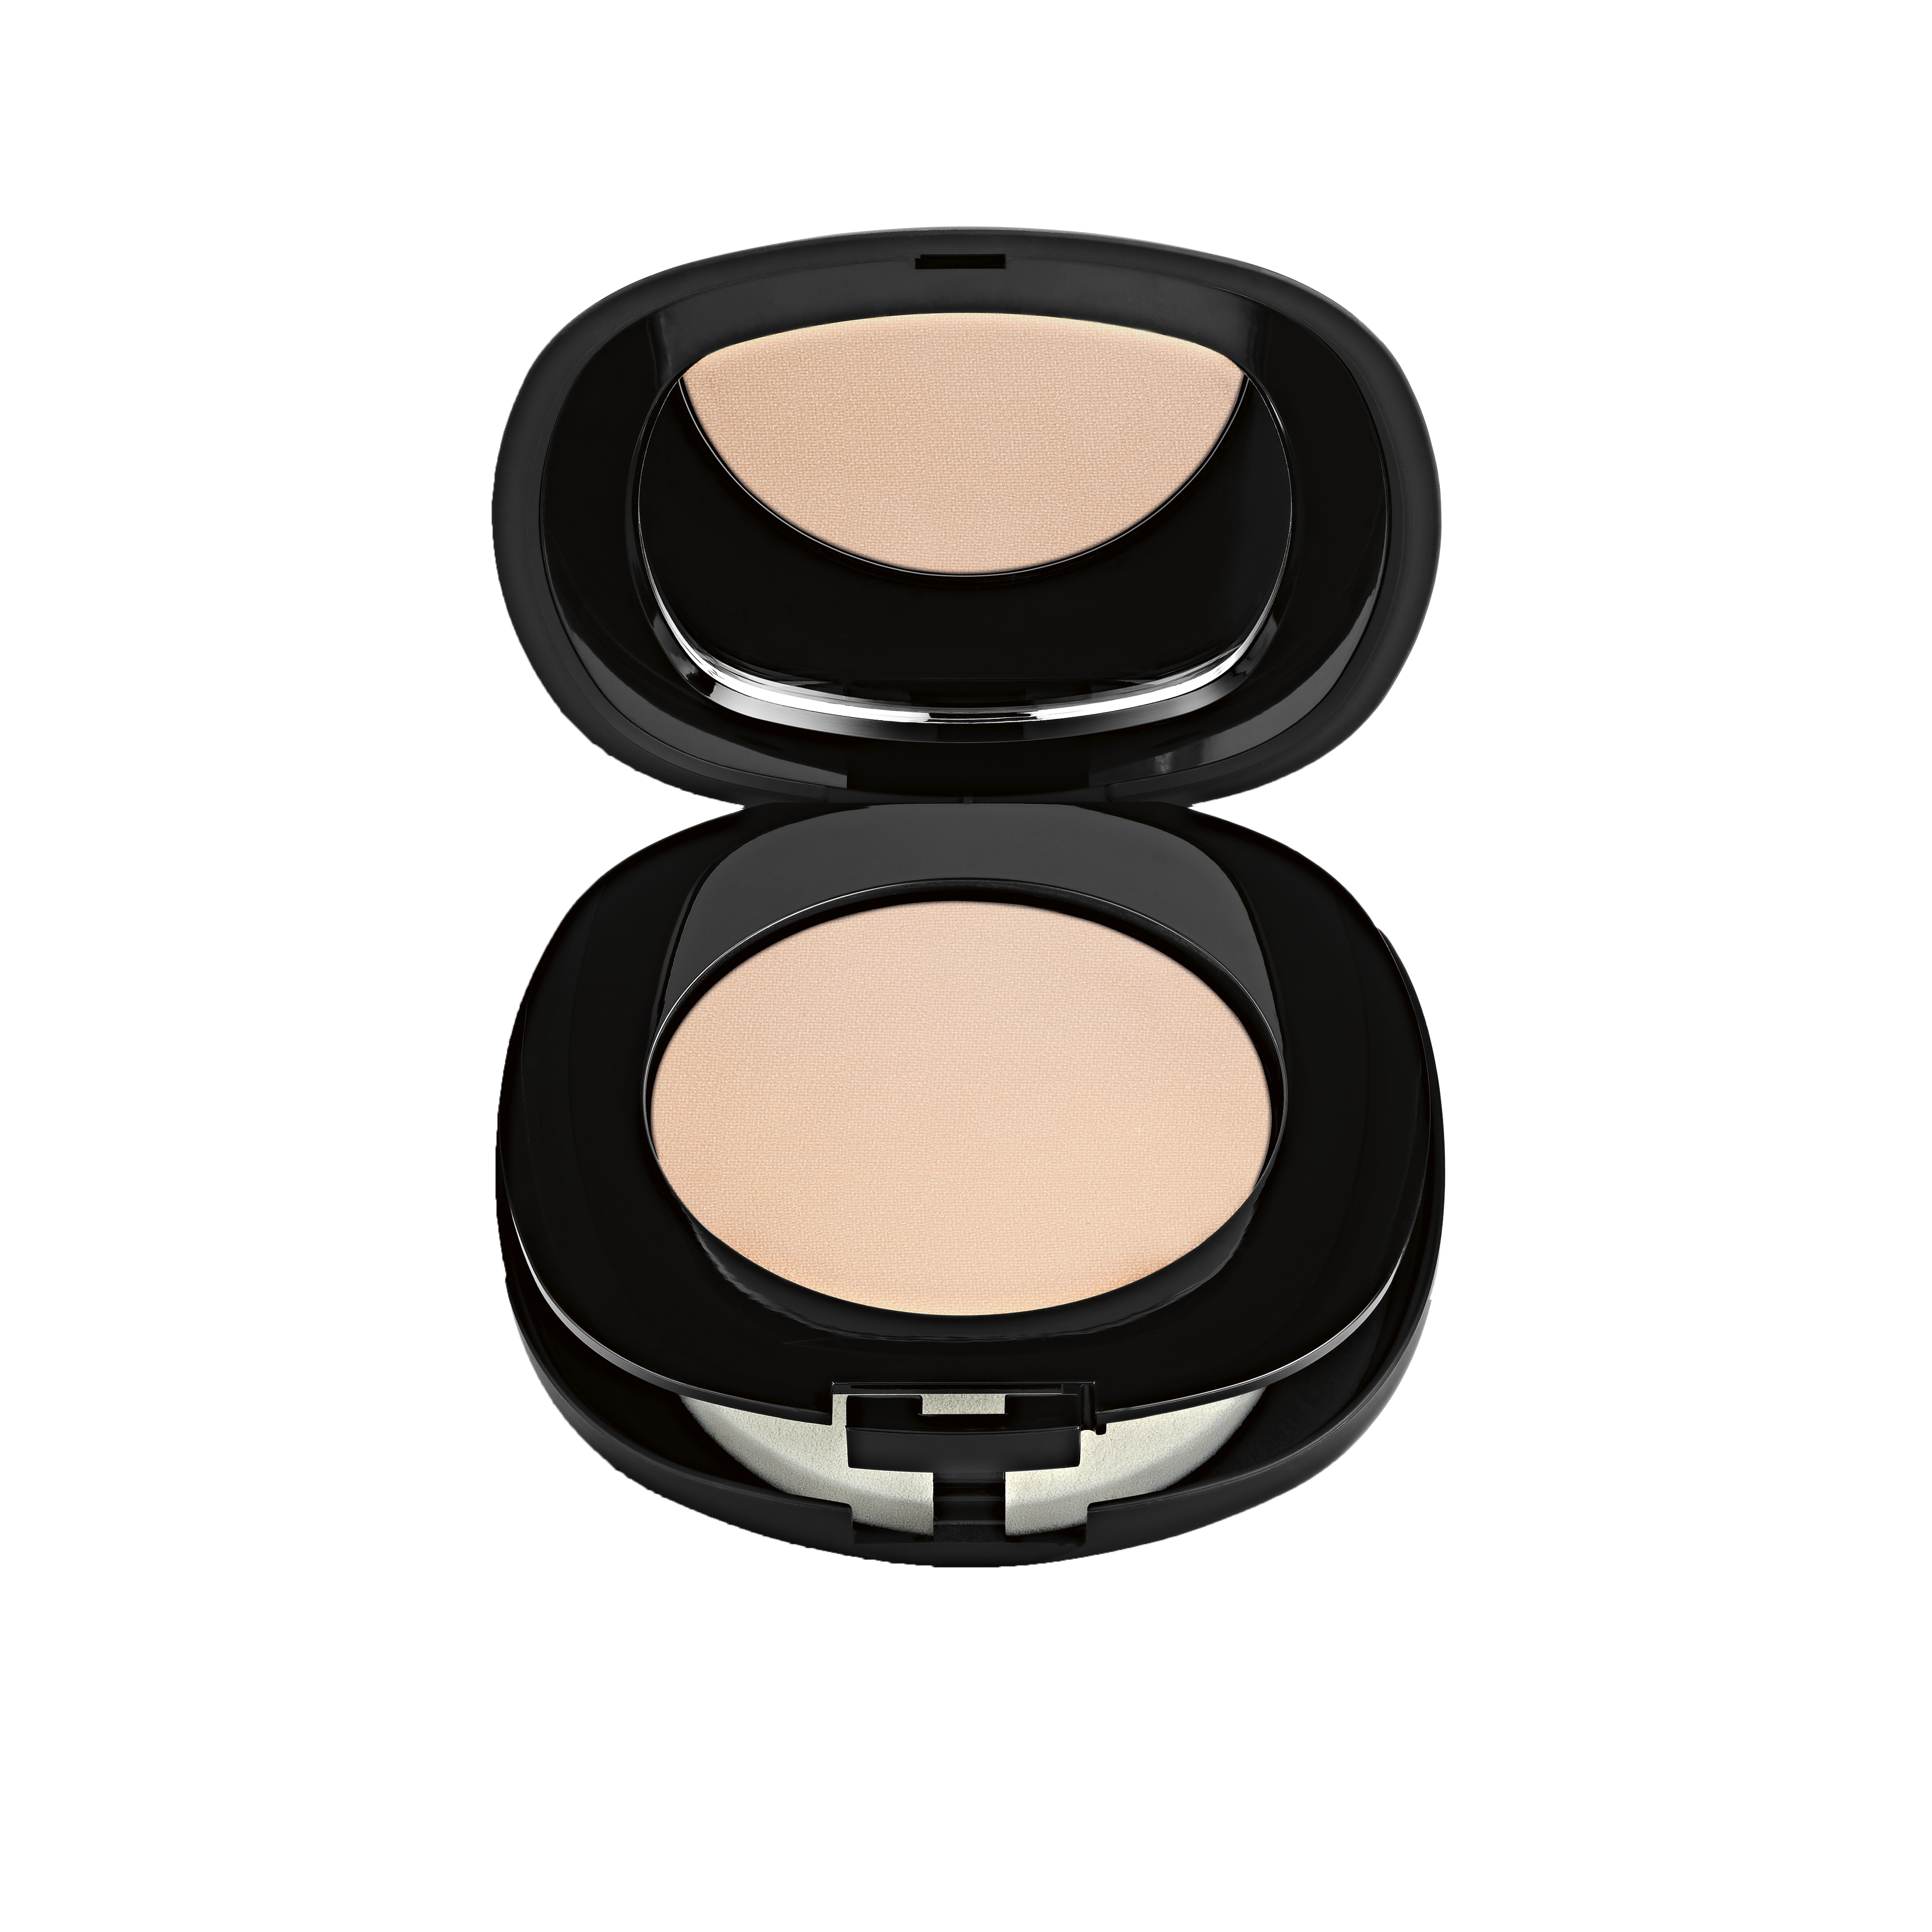 Flawless Finish Everyday Perfection Bouncy Foundation Porcelain 01